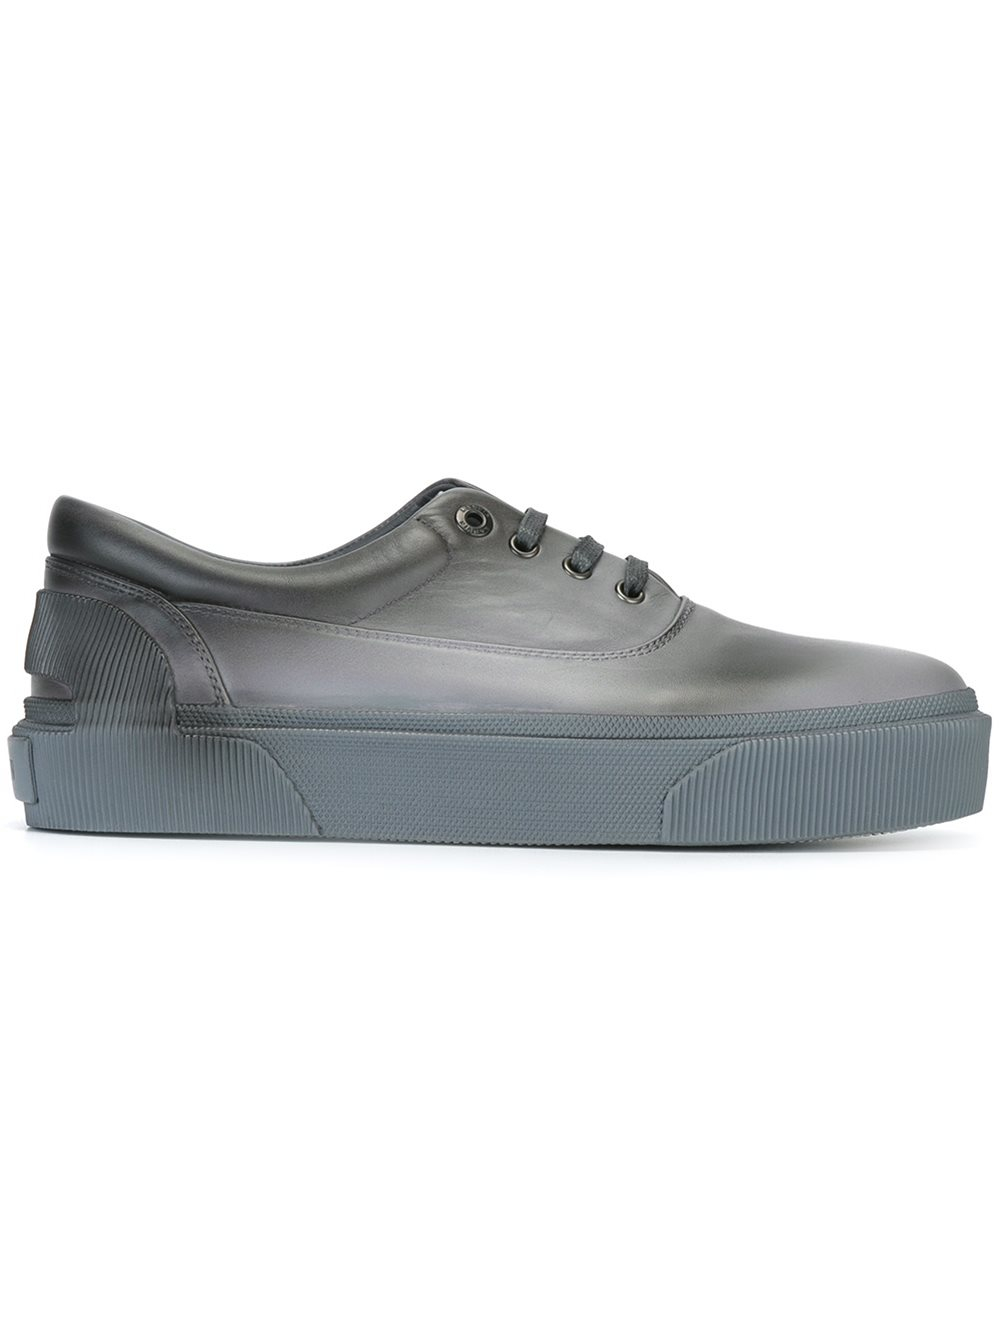 lanvin low top spray paint sneakers in gray for men lyst. Black Bedroom Furniture Sets. Home Design Ideas